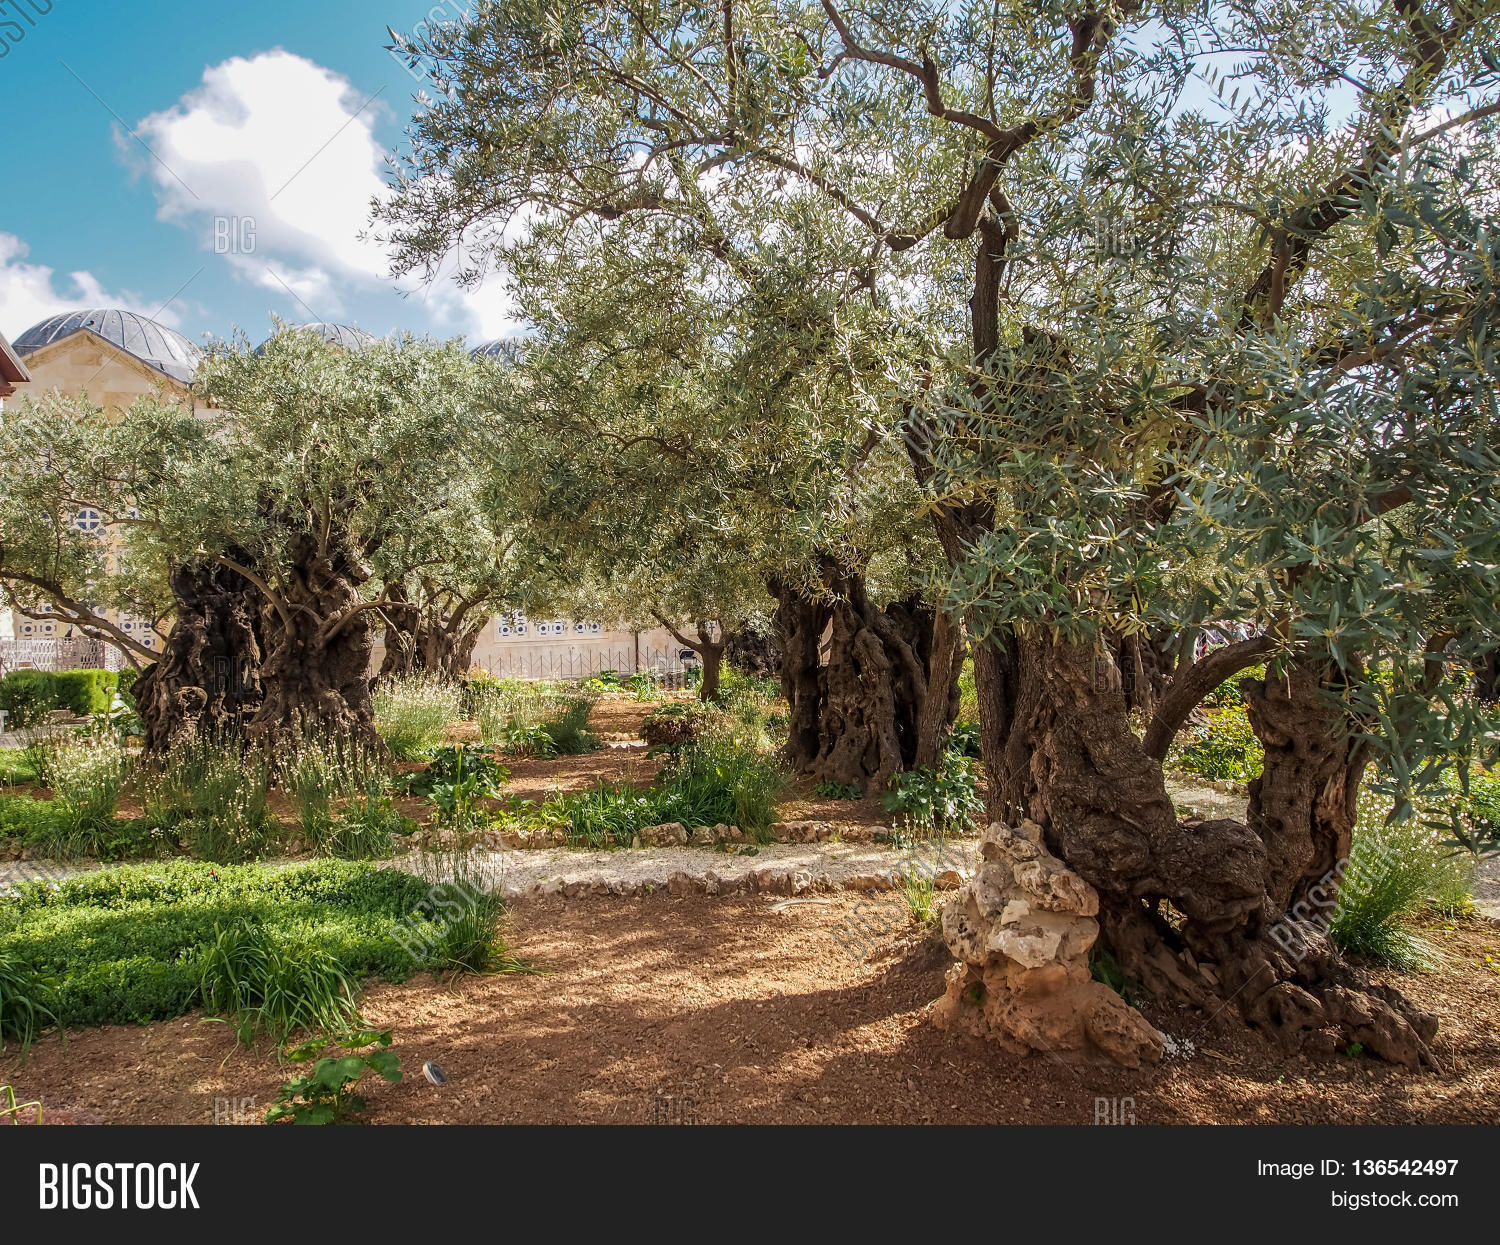 Old Olive Trees Garden Image & Photo (Free Trial) | Bigstock